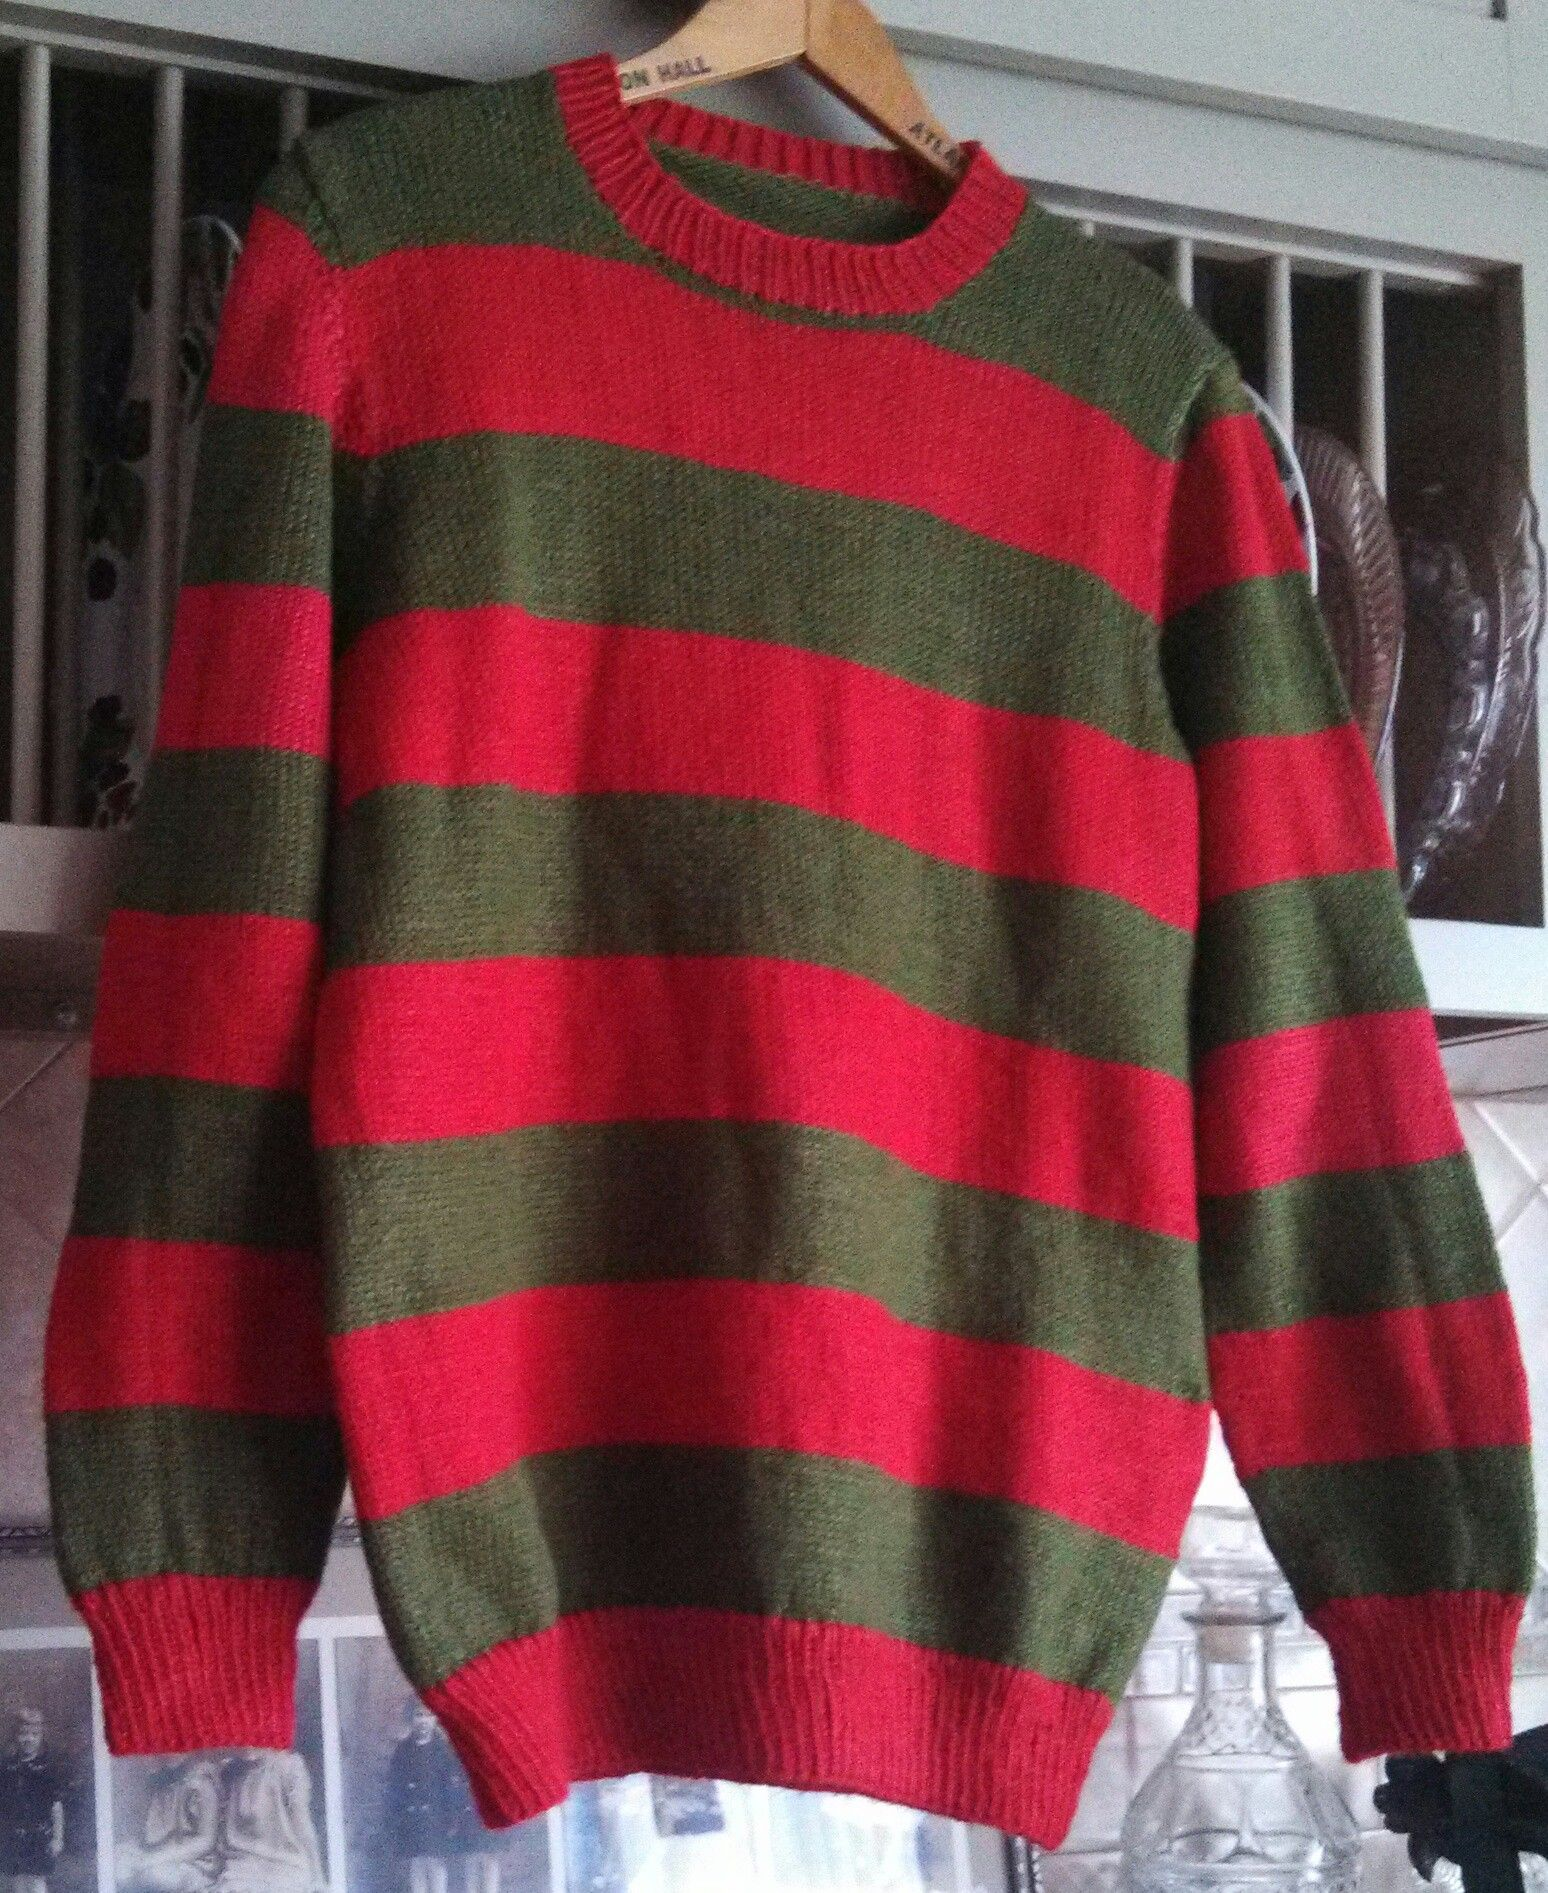 Freddy Krueger Sweater Is For My Granddaughter Holly Though I Cant